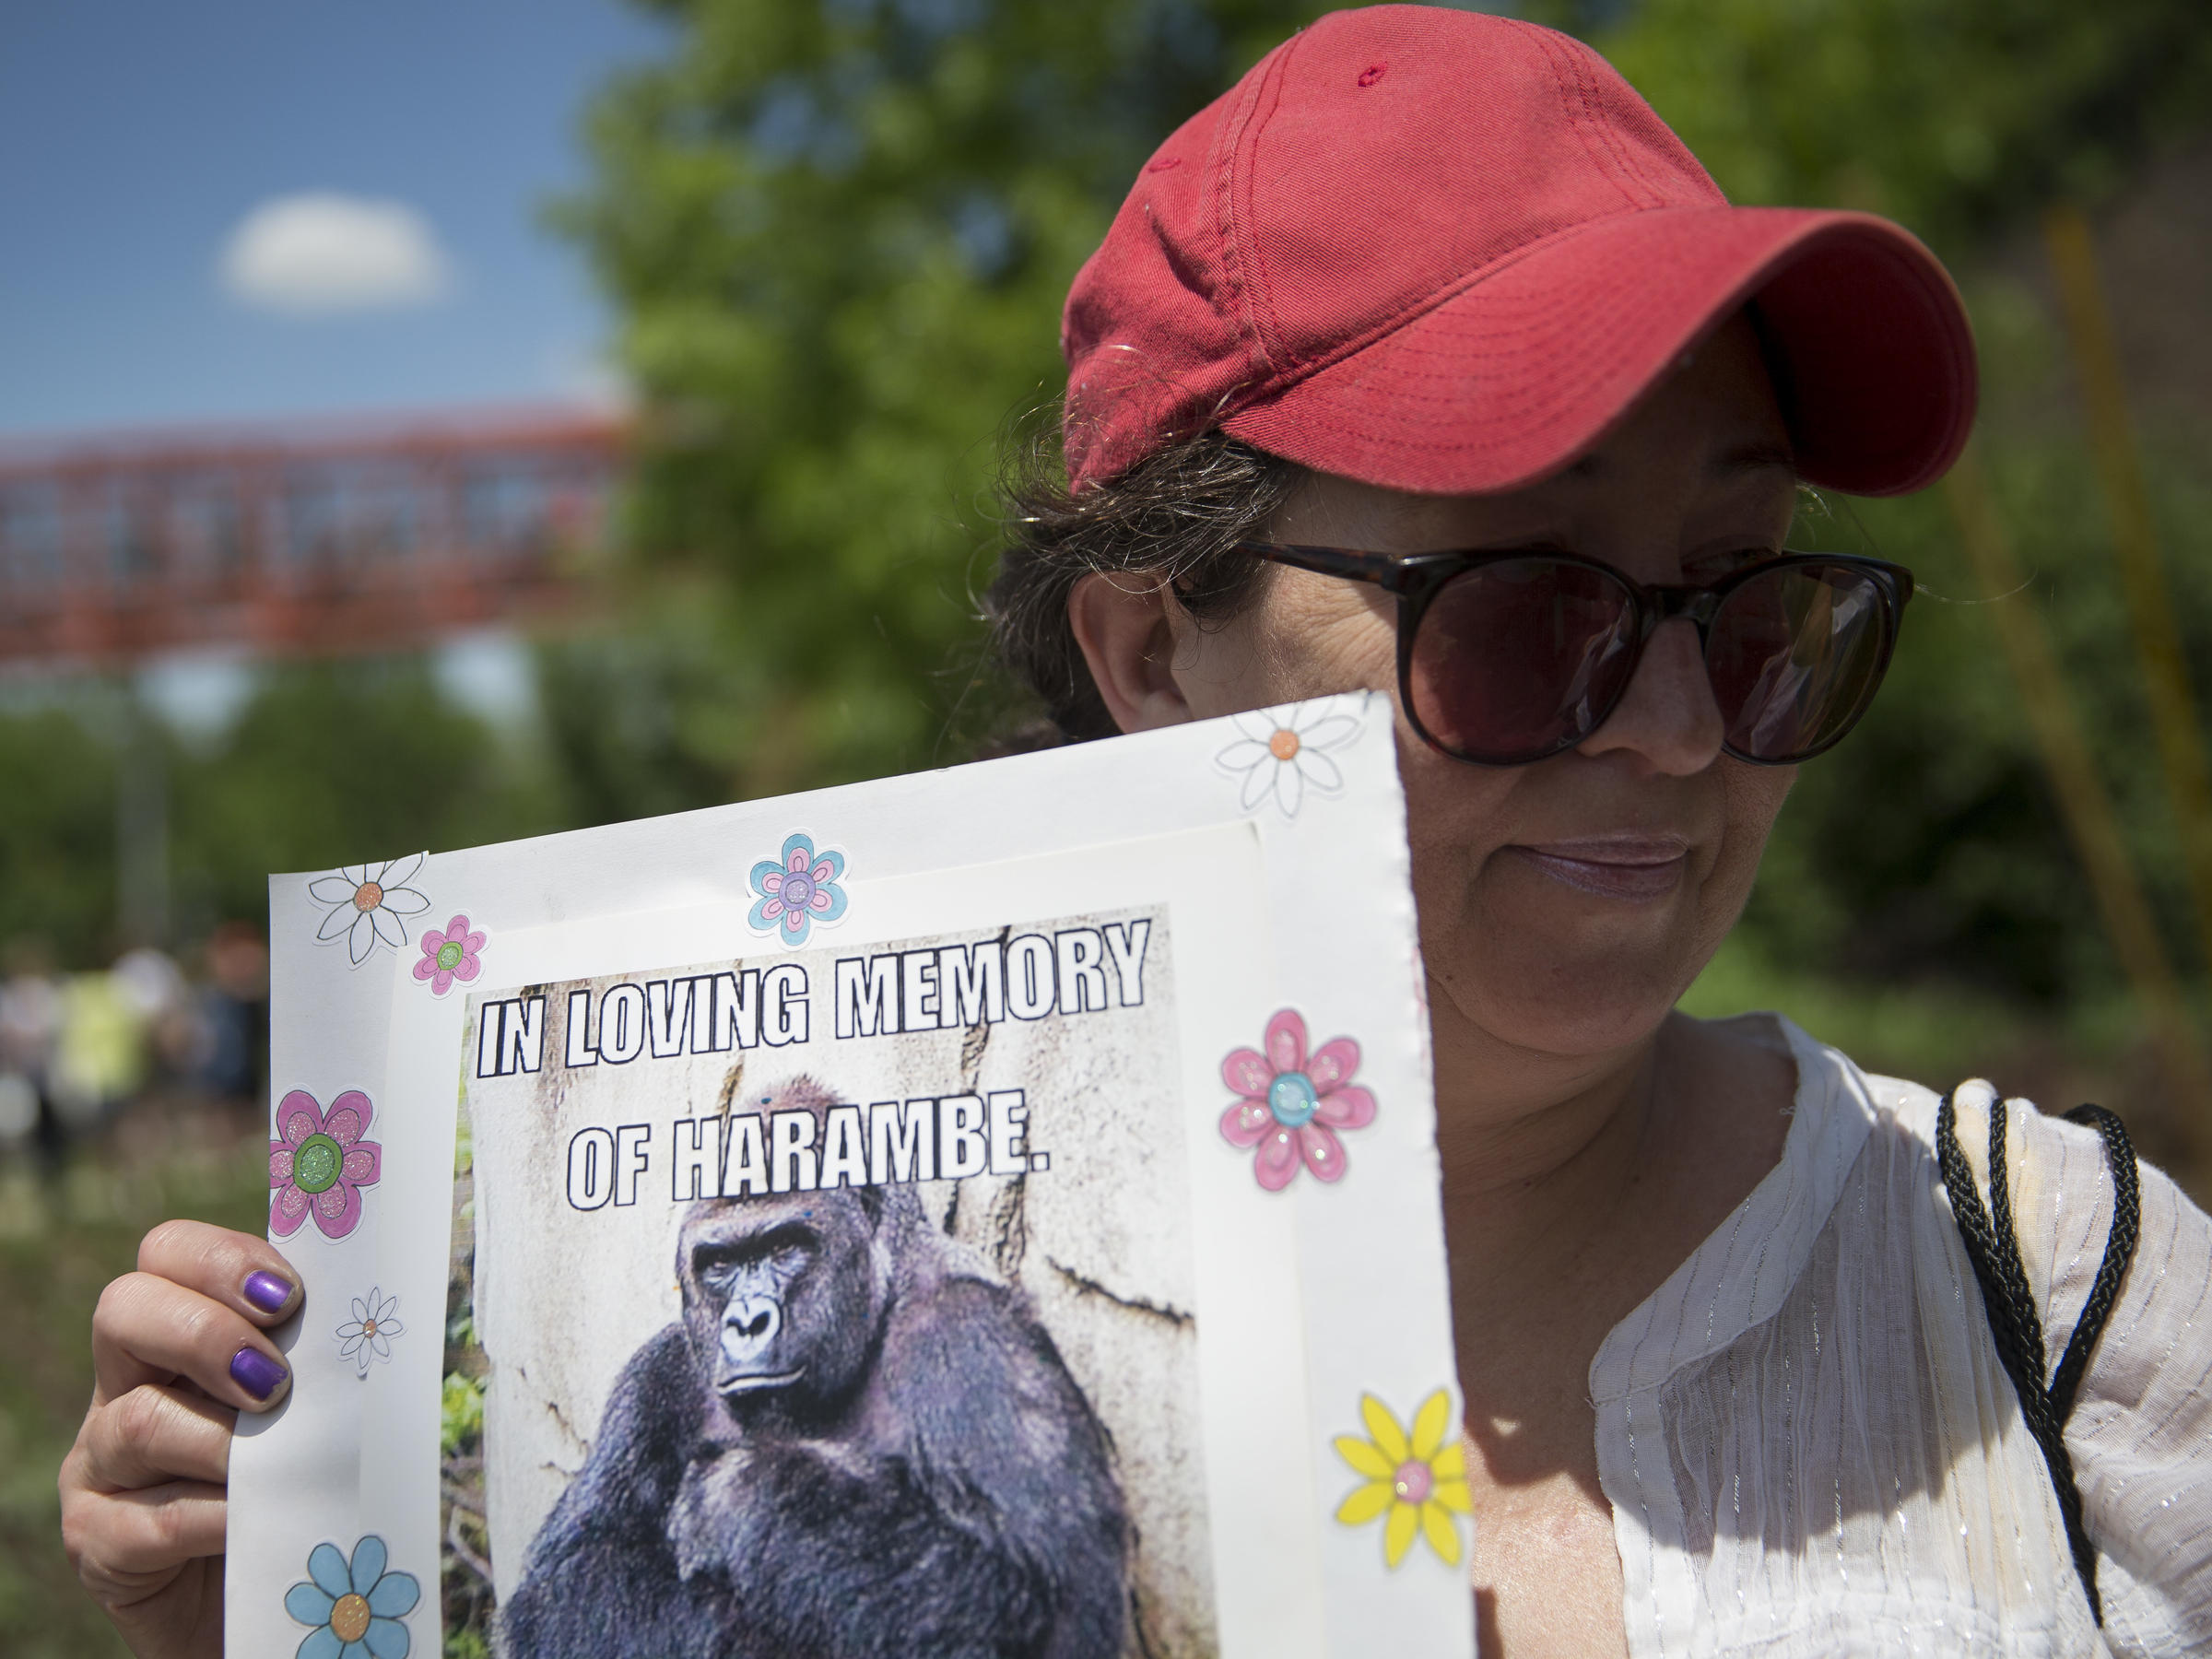 Family releases new statement after gorilla killed at Cincinnati Zoo